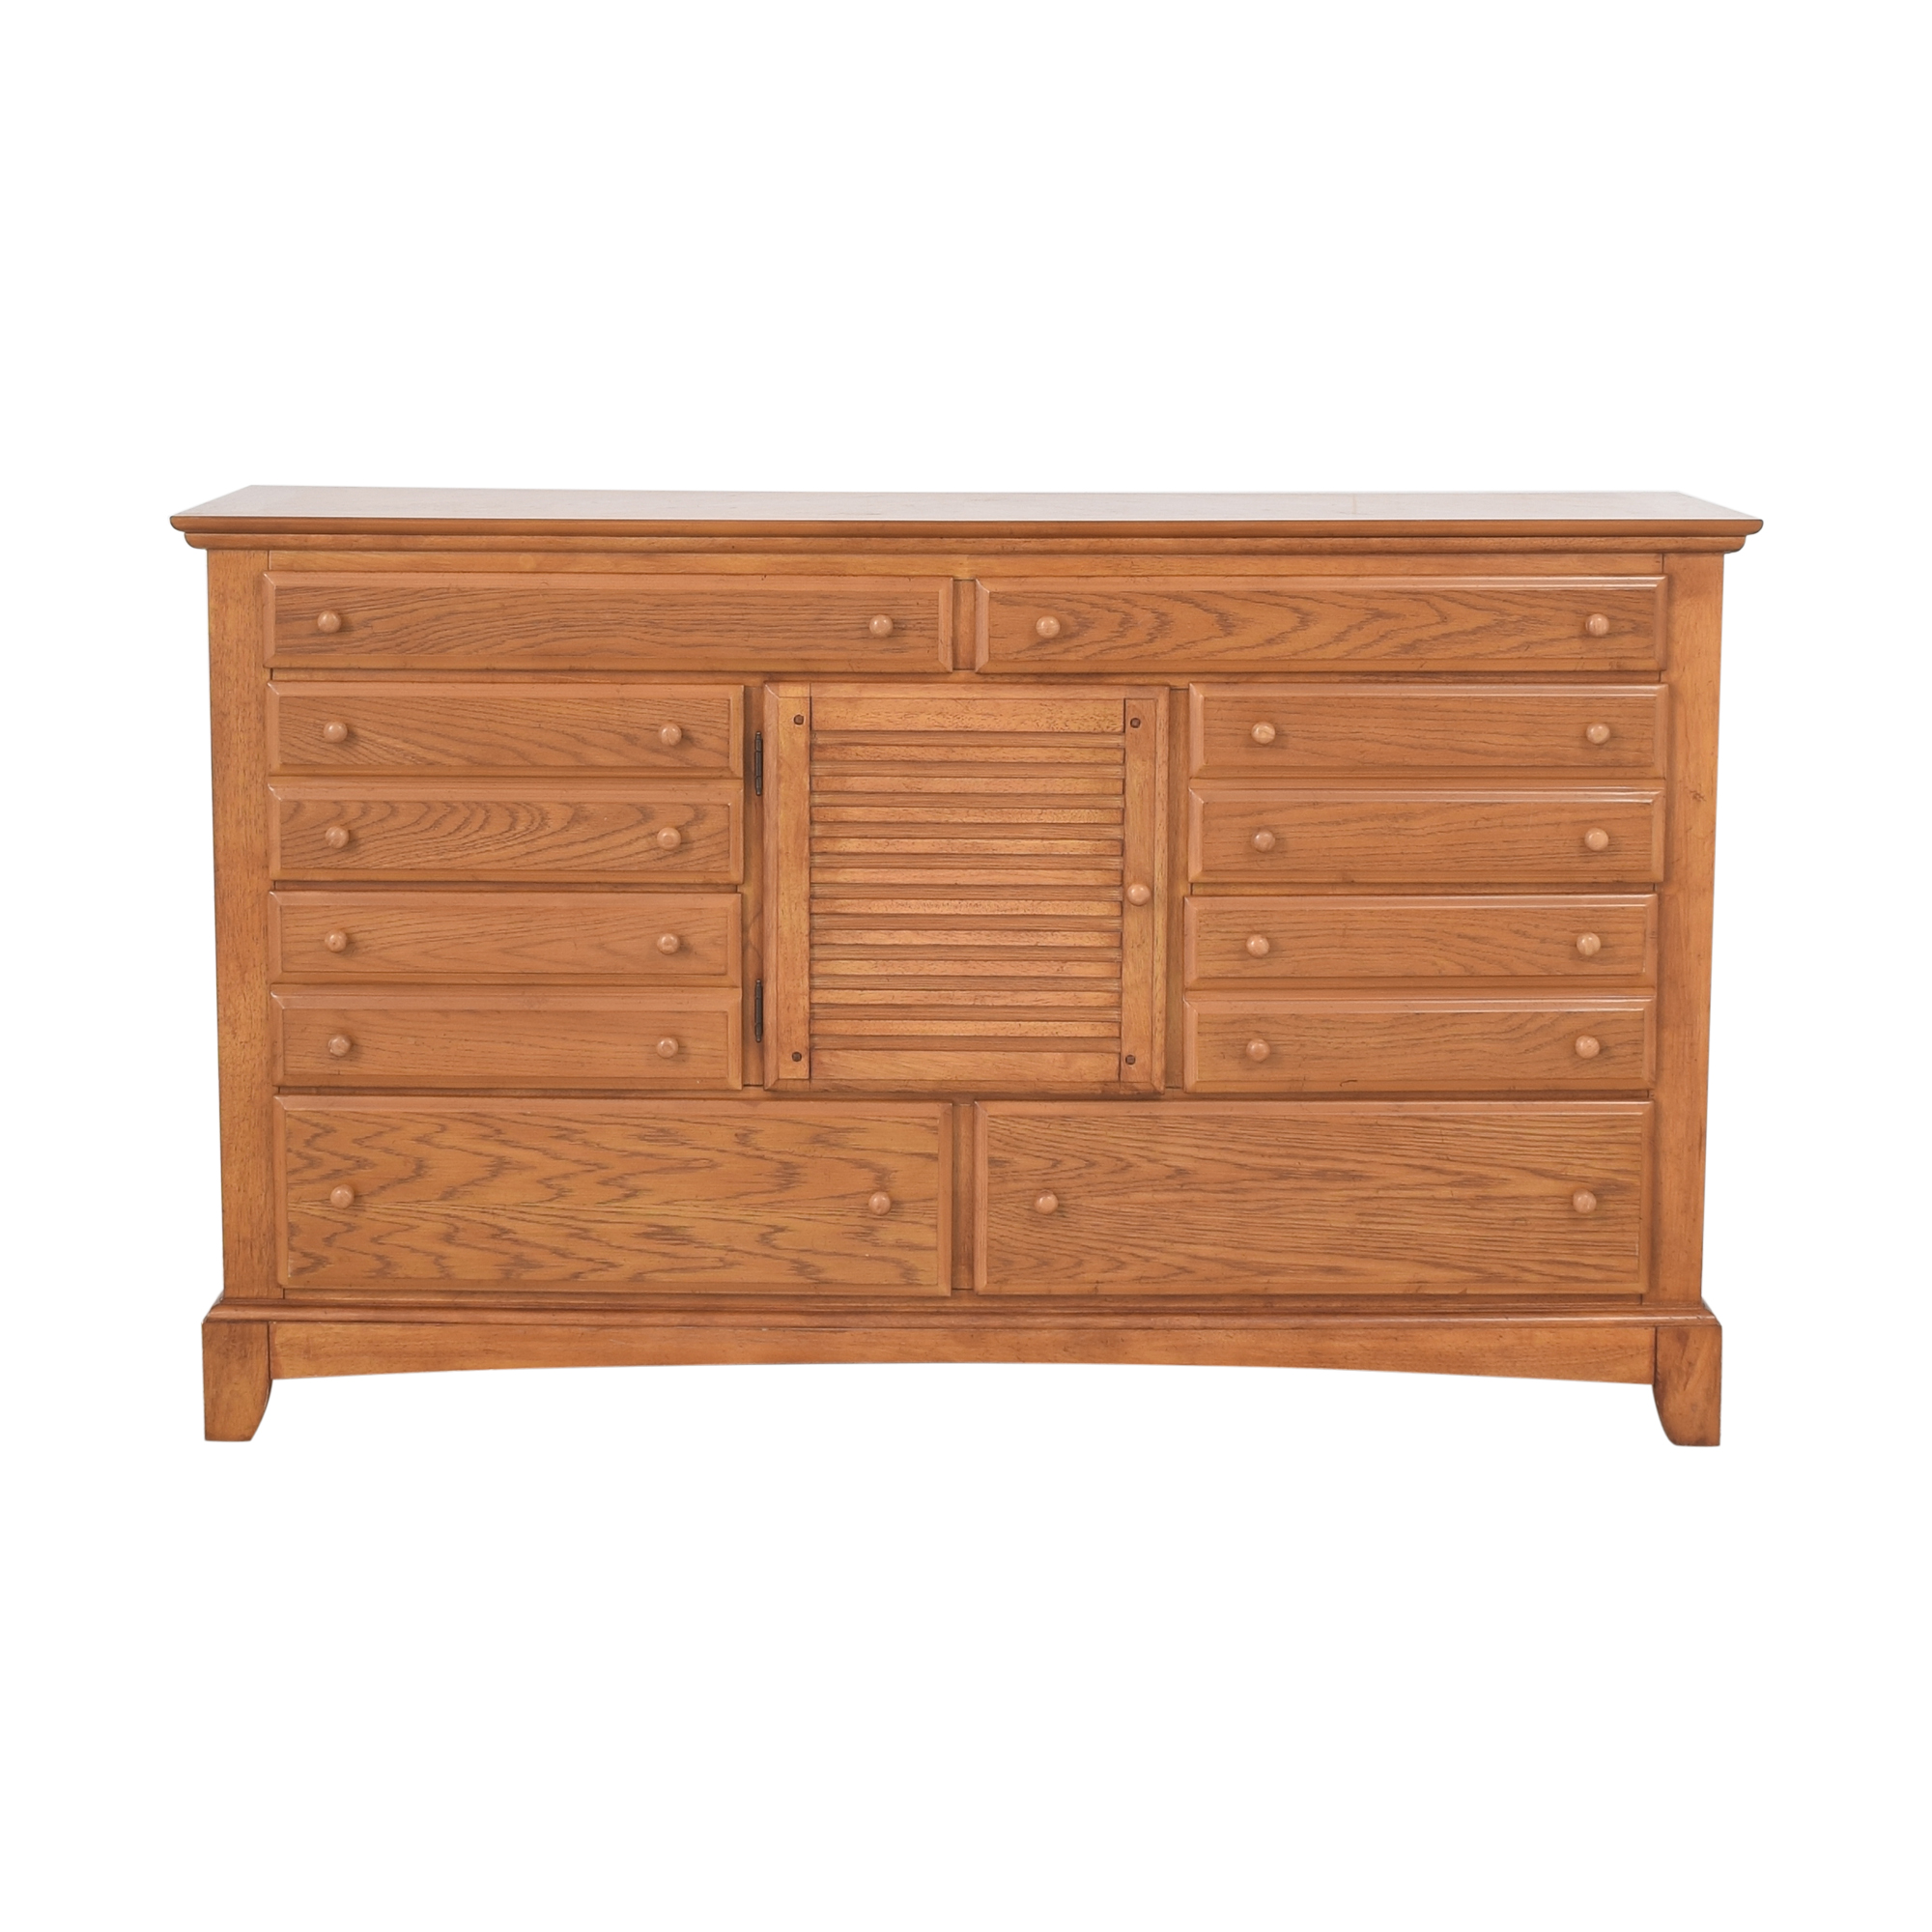 Davis International Davis International Triple Dresser Storage